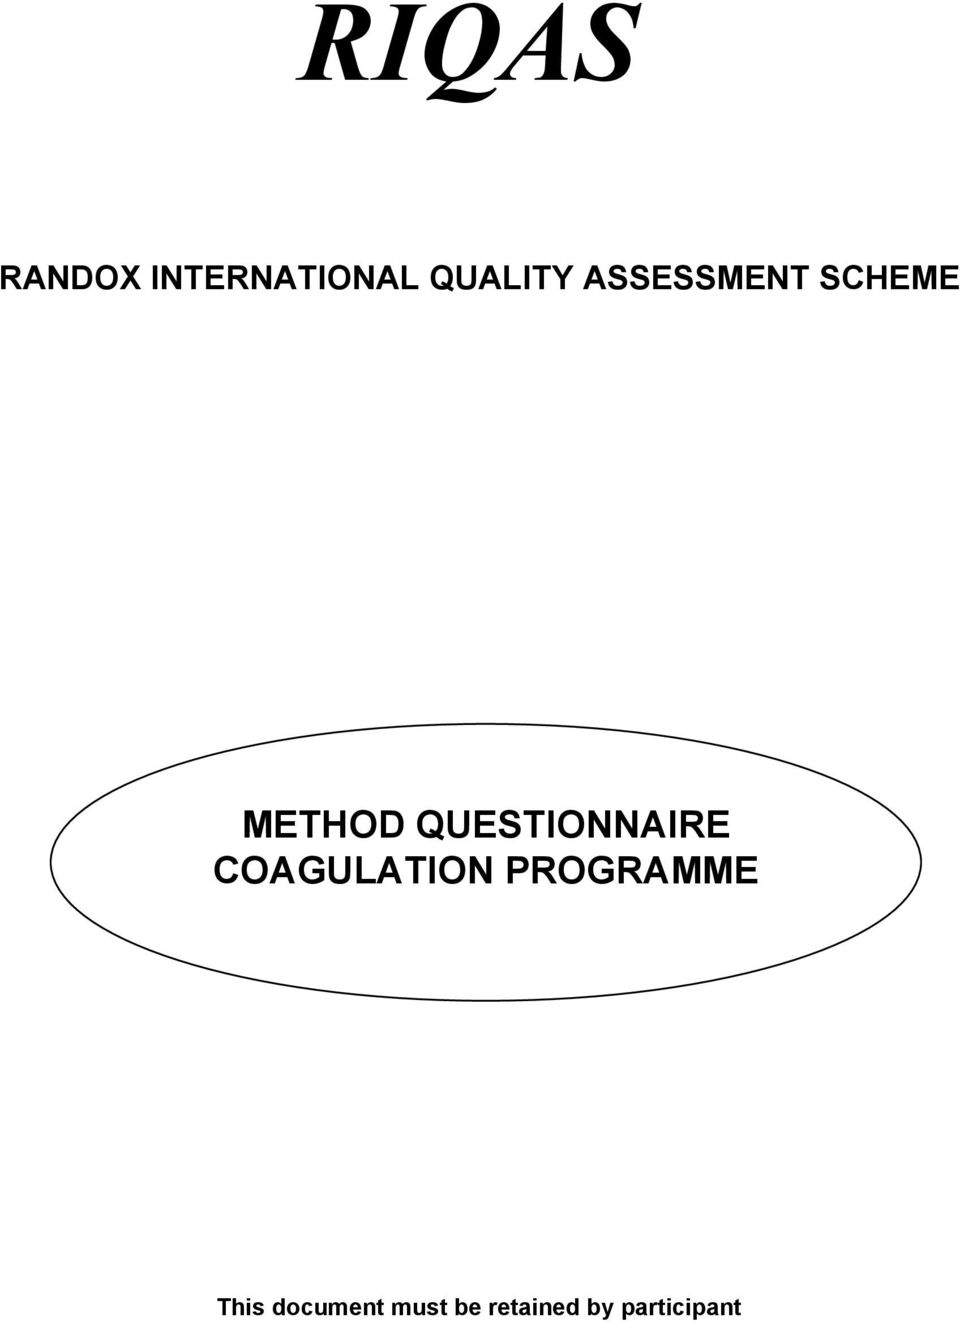 QUESTIONNAIRE COAGULATION PROGRAMME